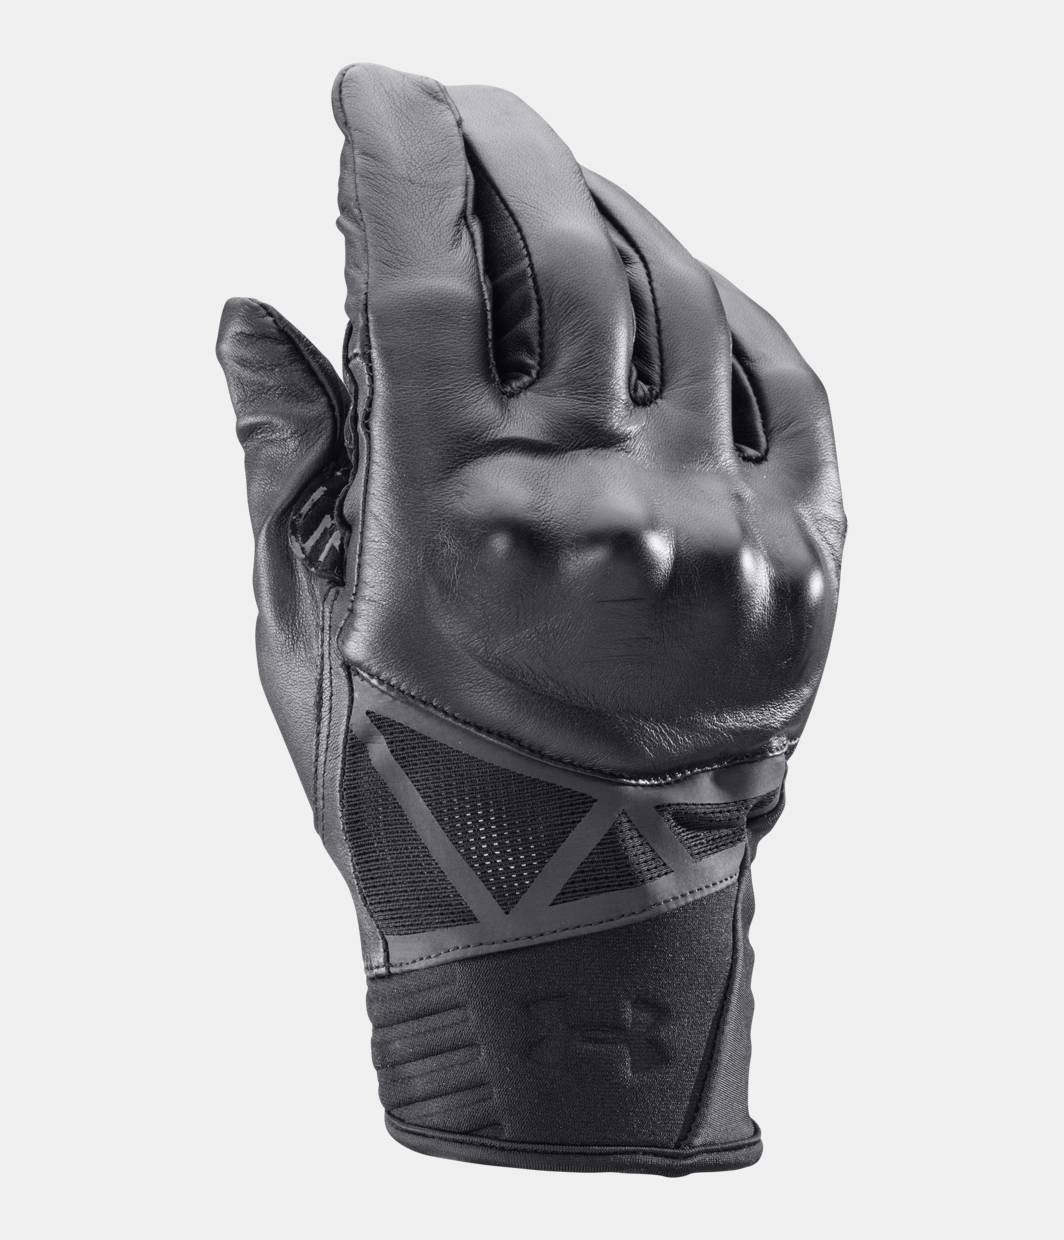 Mens sizes in gloves - Men S Ua Tactical Knuckle Gloves Black Zoomed Image